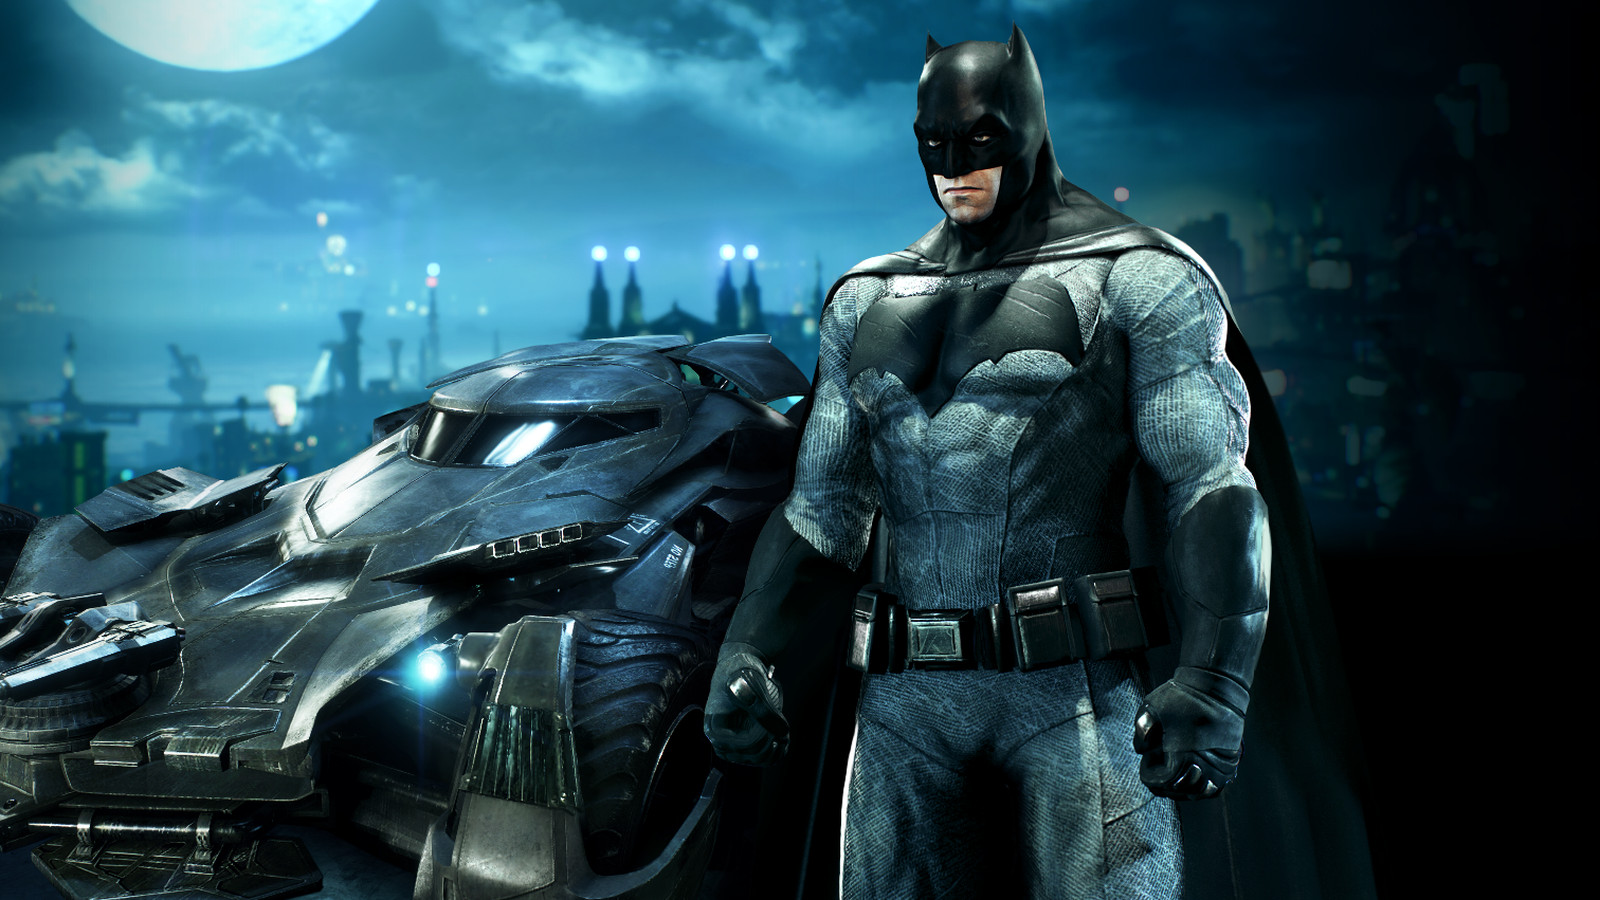 Christian Bale Iphone Wallpaper Ben Affleck S Costume And Batmobile Are Coming Next Month